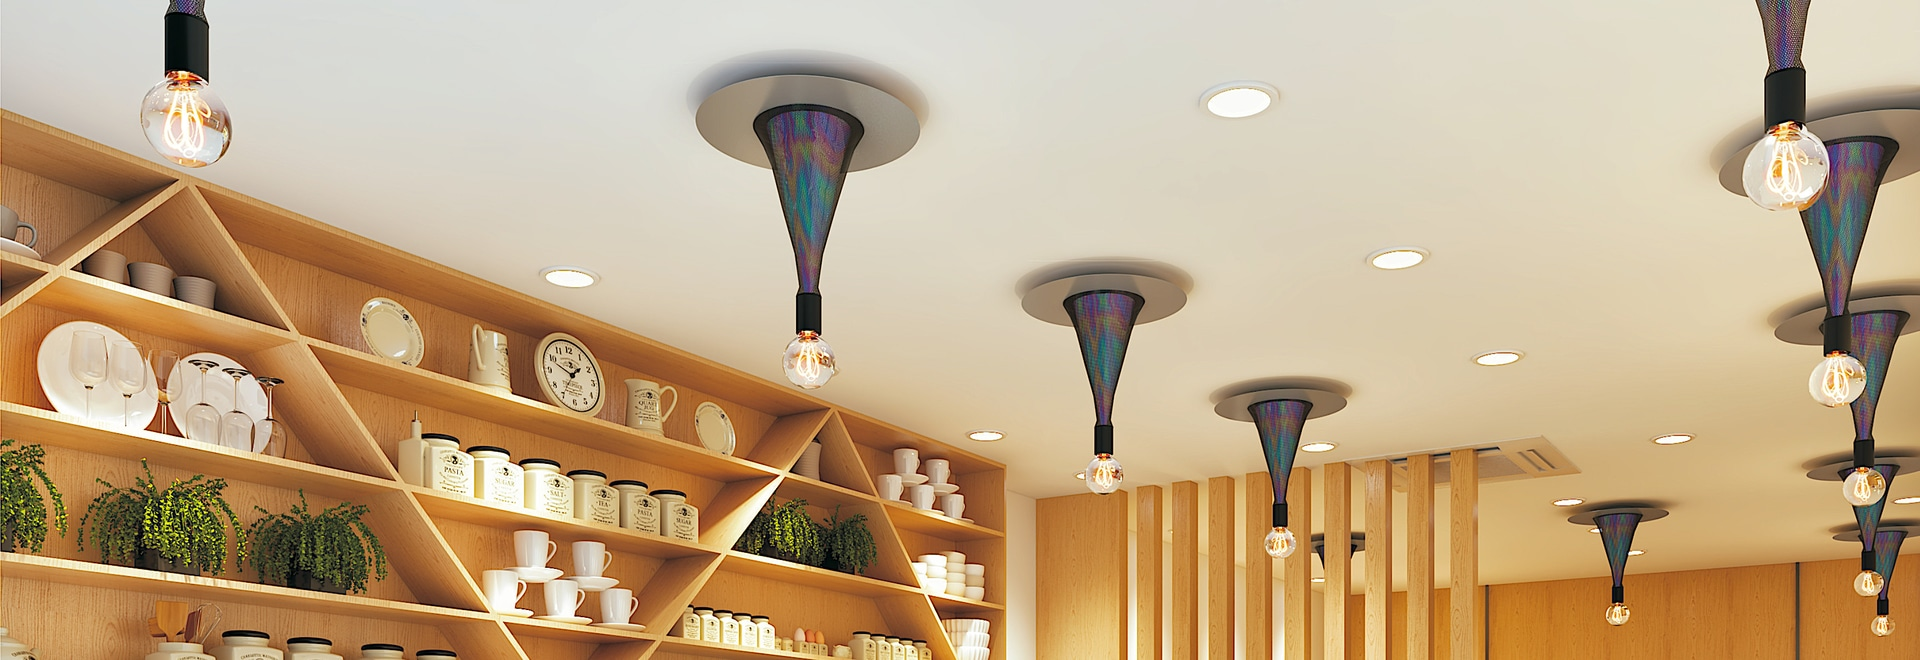 Look up to the ceiling: interior designs with WOW effect